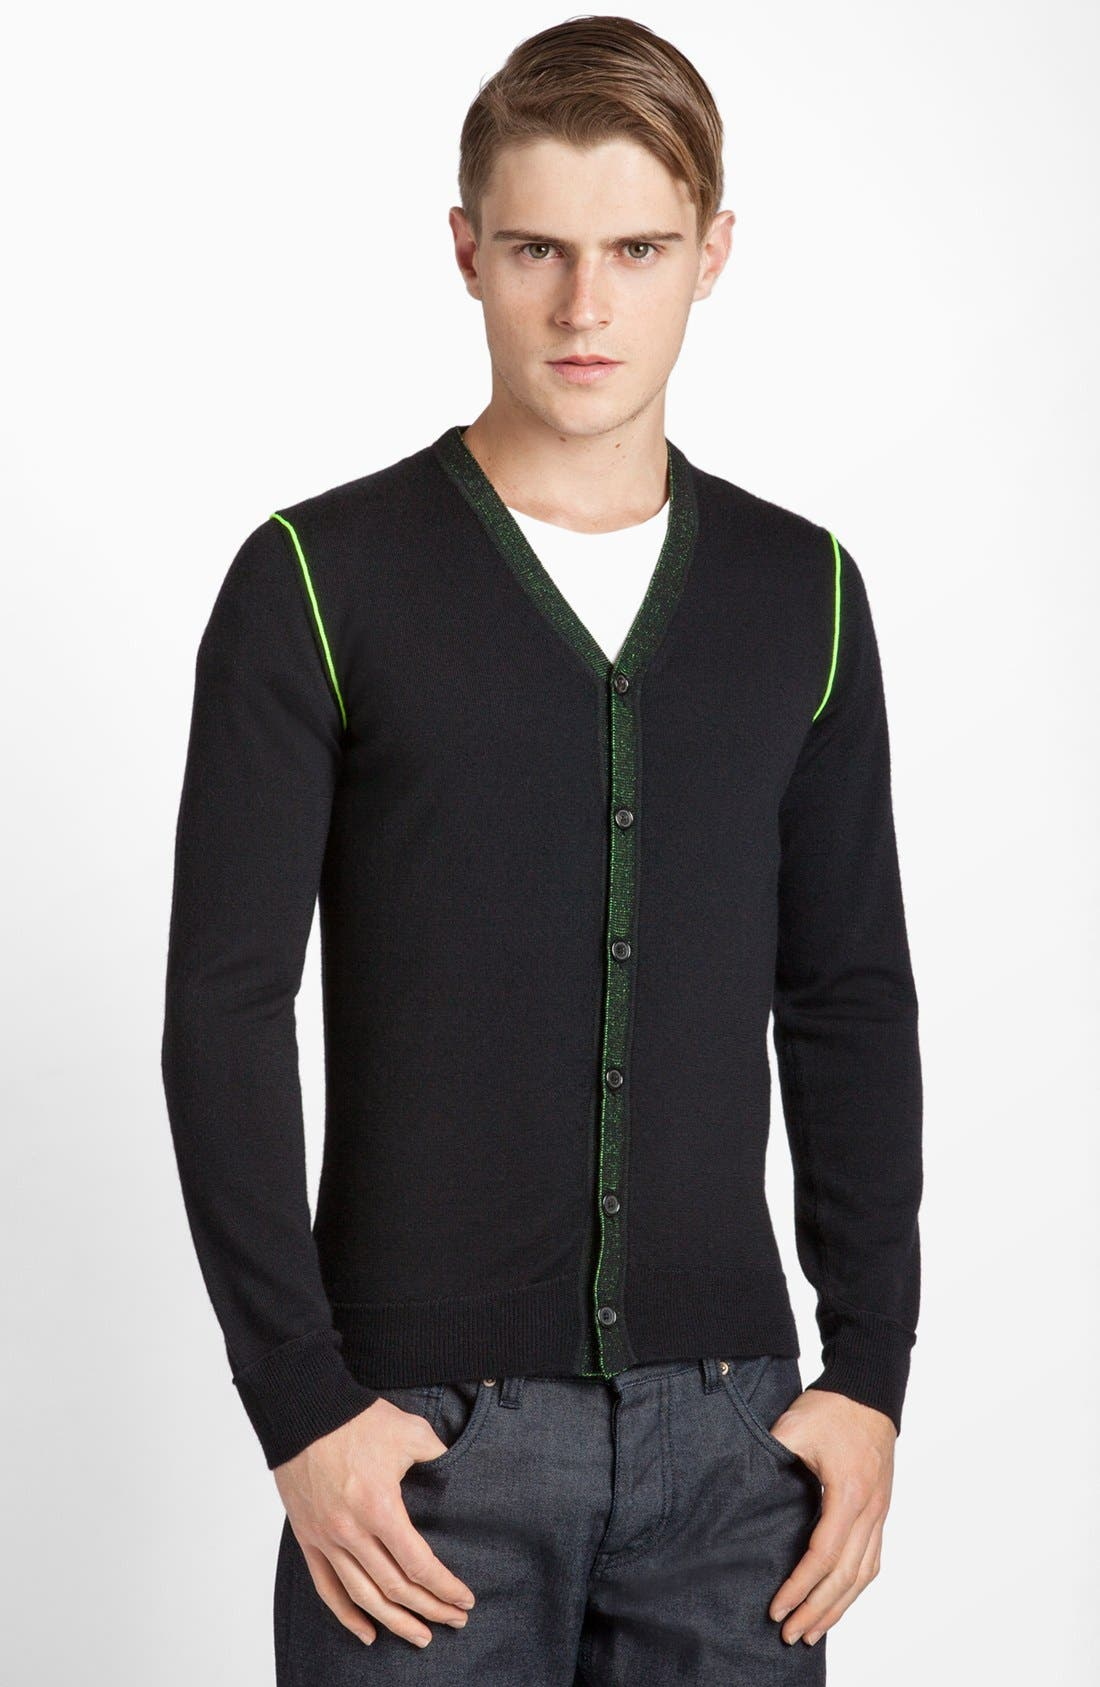 Main Image - Jil Sander Cashmere Cardigan with Neon Piping